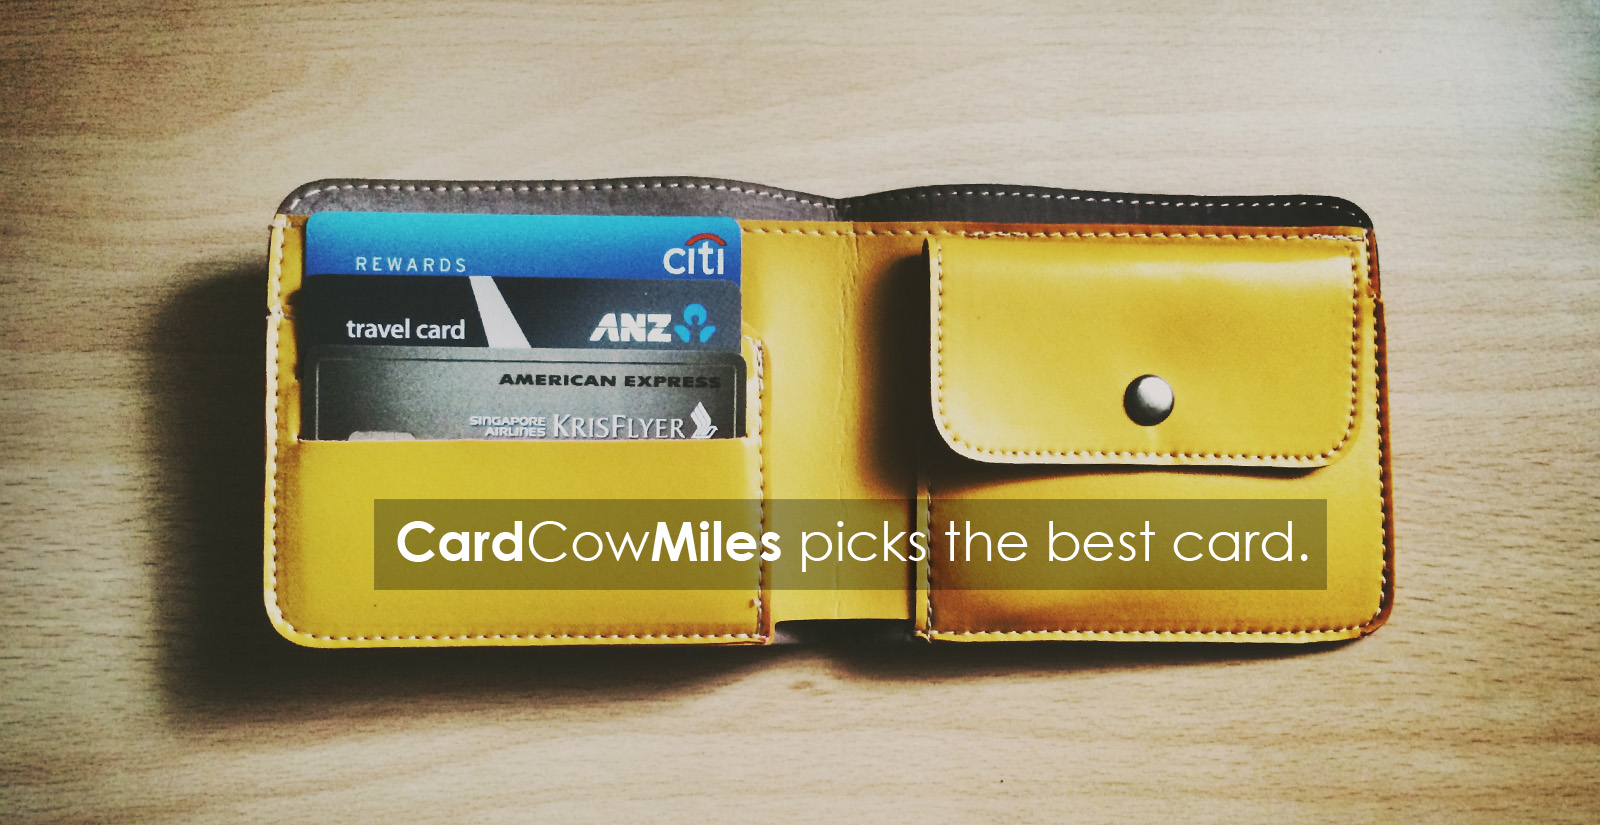 Card Cow Miles 1